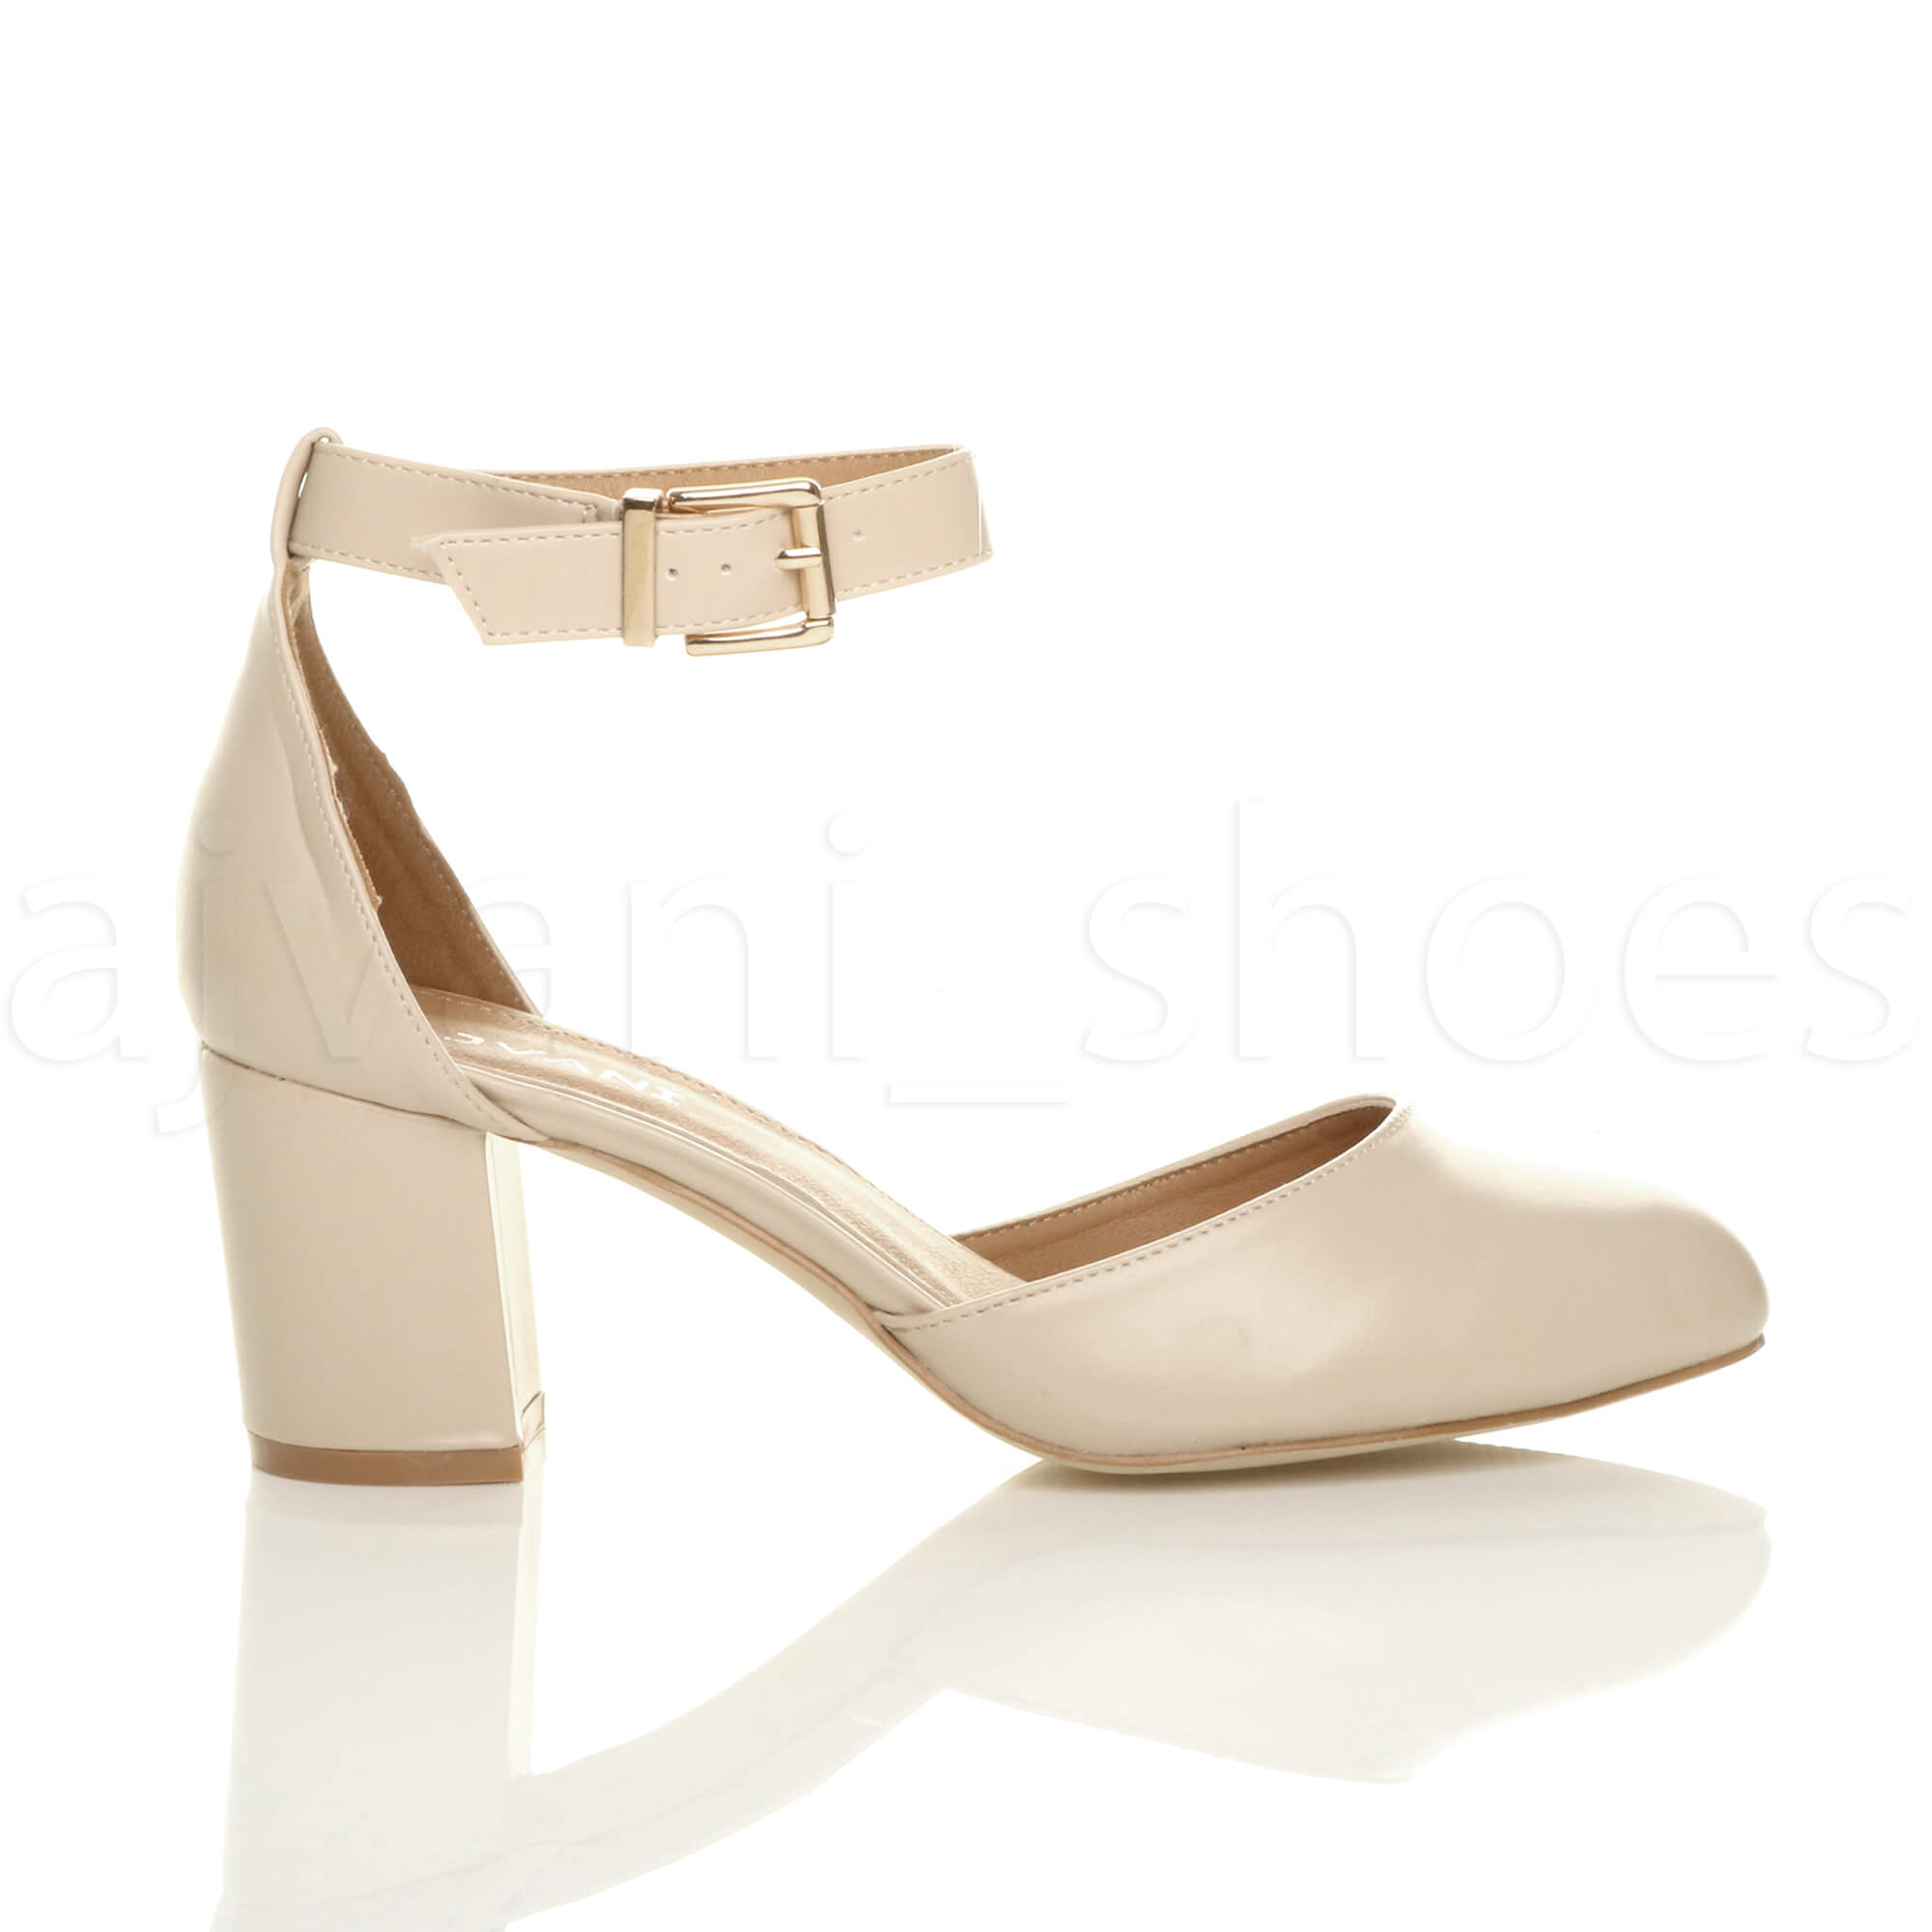 WOMENS-LADIES-LOW-MID-BLOCK-HEEL-ANKLE-STRAP-MARY-JANE-COURT-SHOES-SANDALS-SIZE thumbnail 107